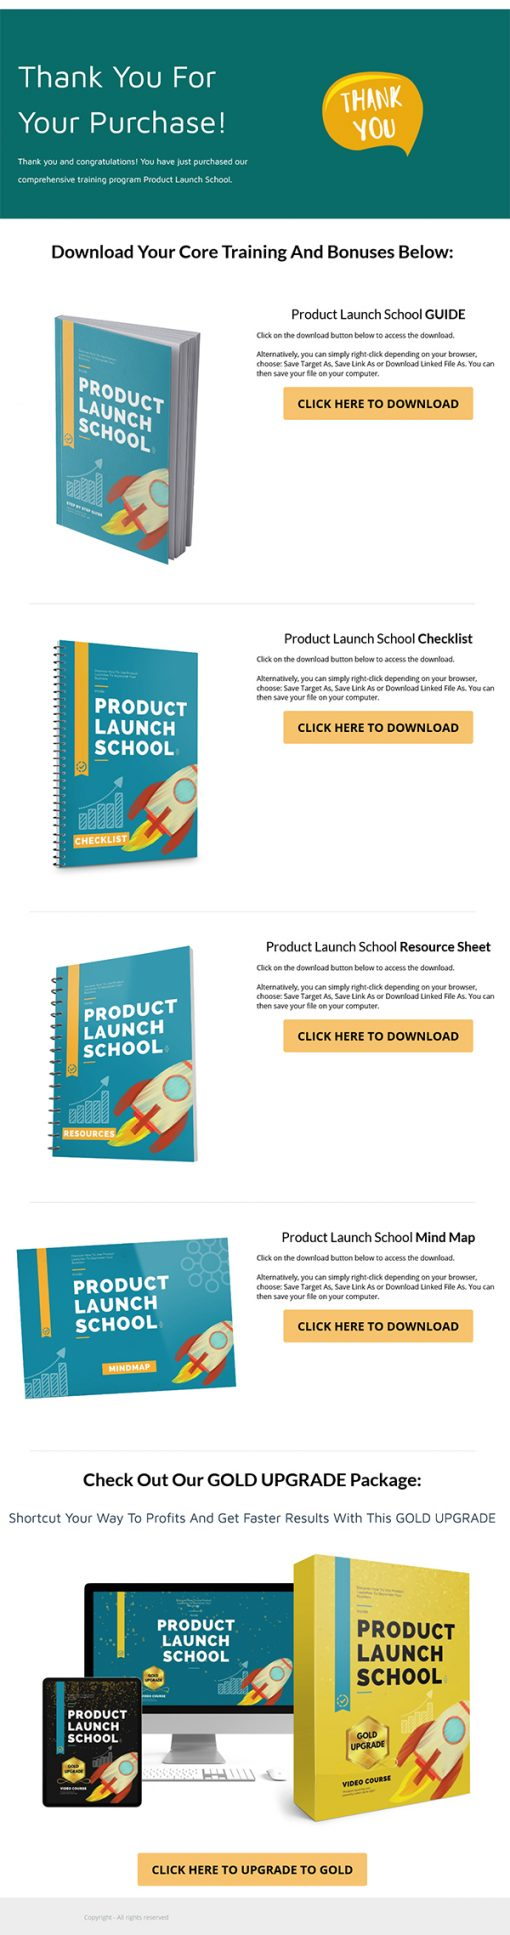 Product Launch School Ebook and Videos MRR